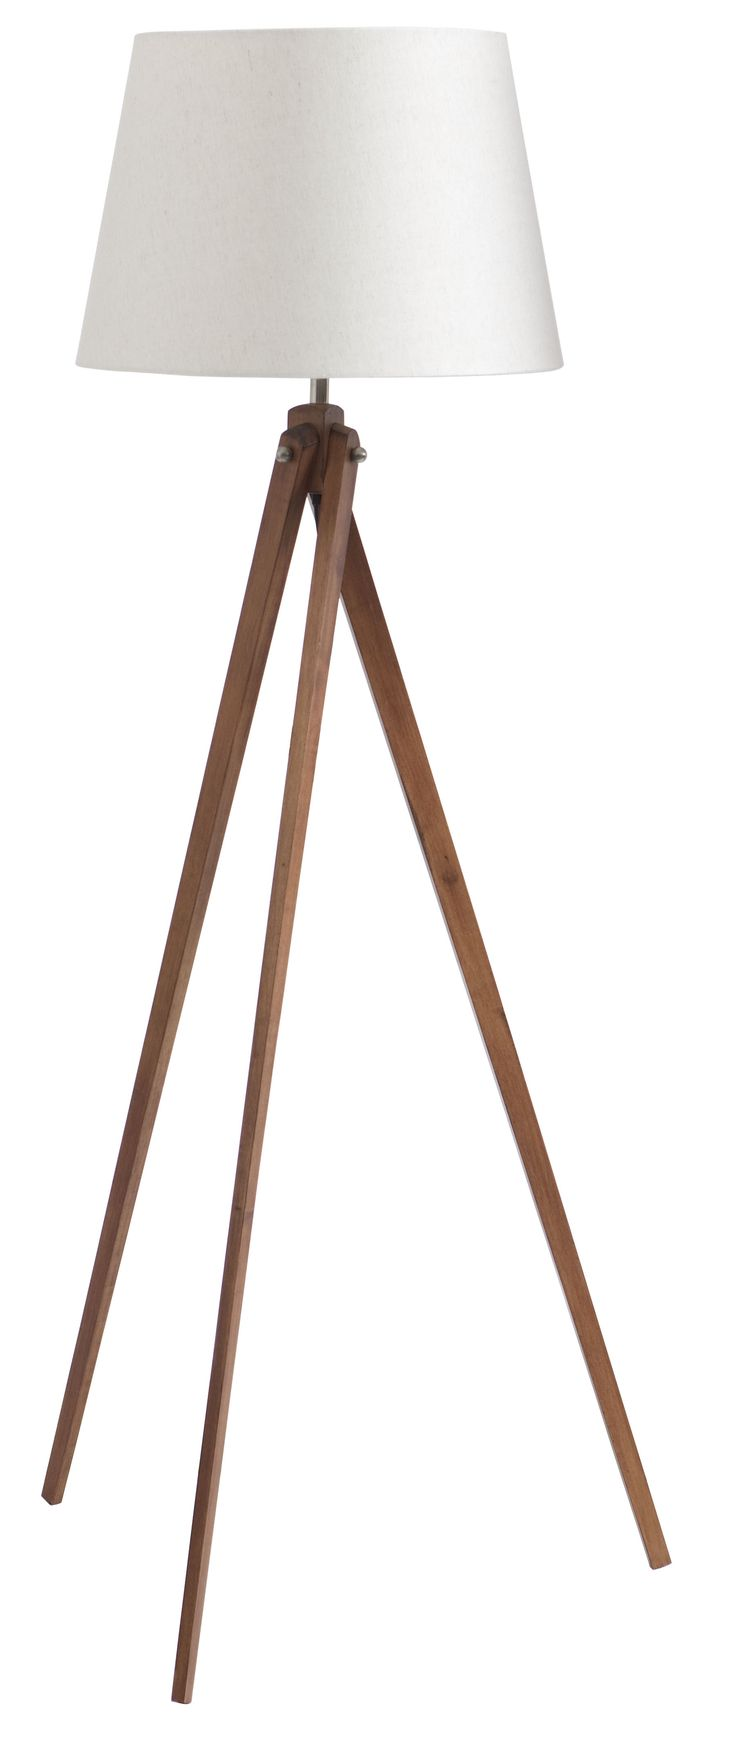 Cast some light on the situation with an elegant Hades Floor Lamp.  Its ivory shade and tapered wooden tripod base is a stylish and practical addition to any living room and is perfect for reading by.  Price $299.